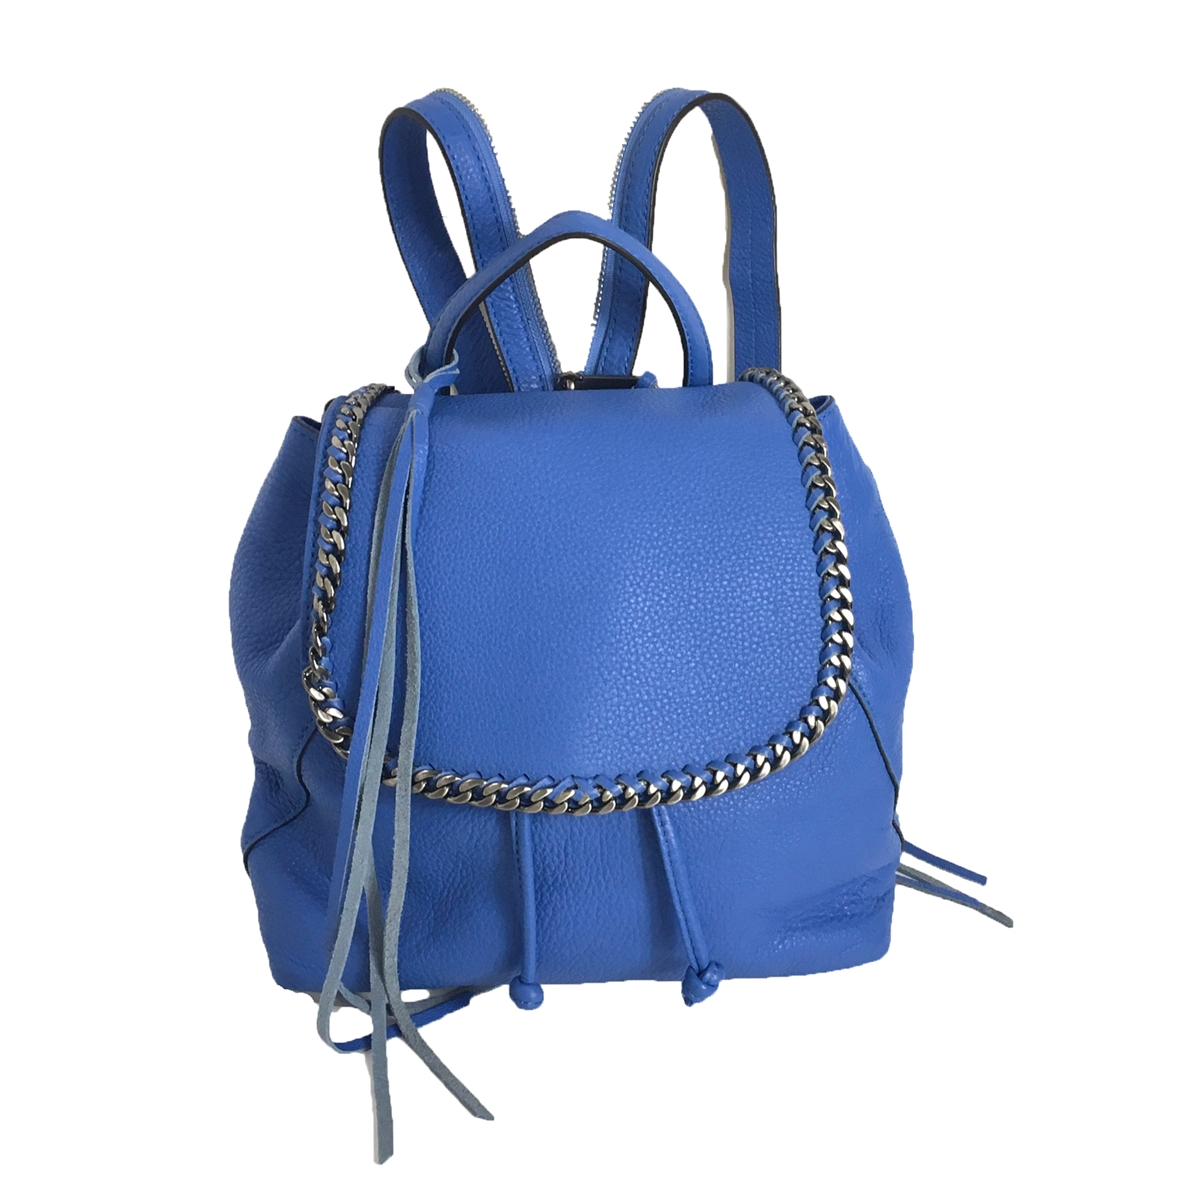 Rebecca Minkoff Small Bryn Leather Backpack, Denim Blue